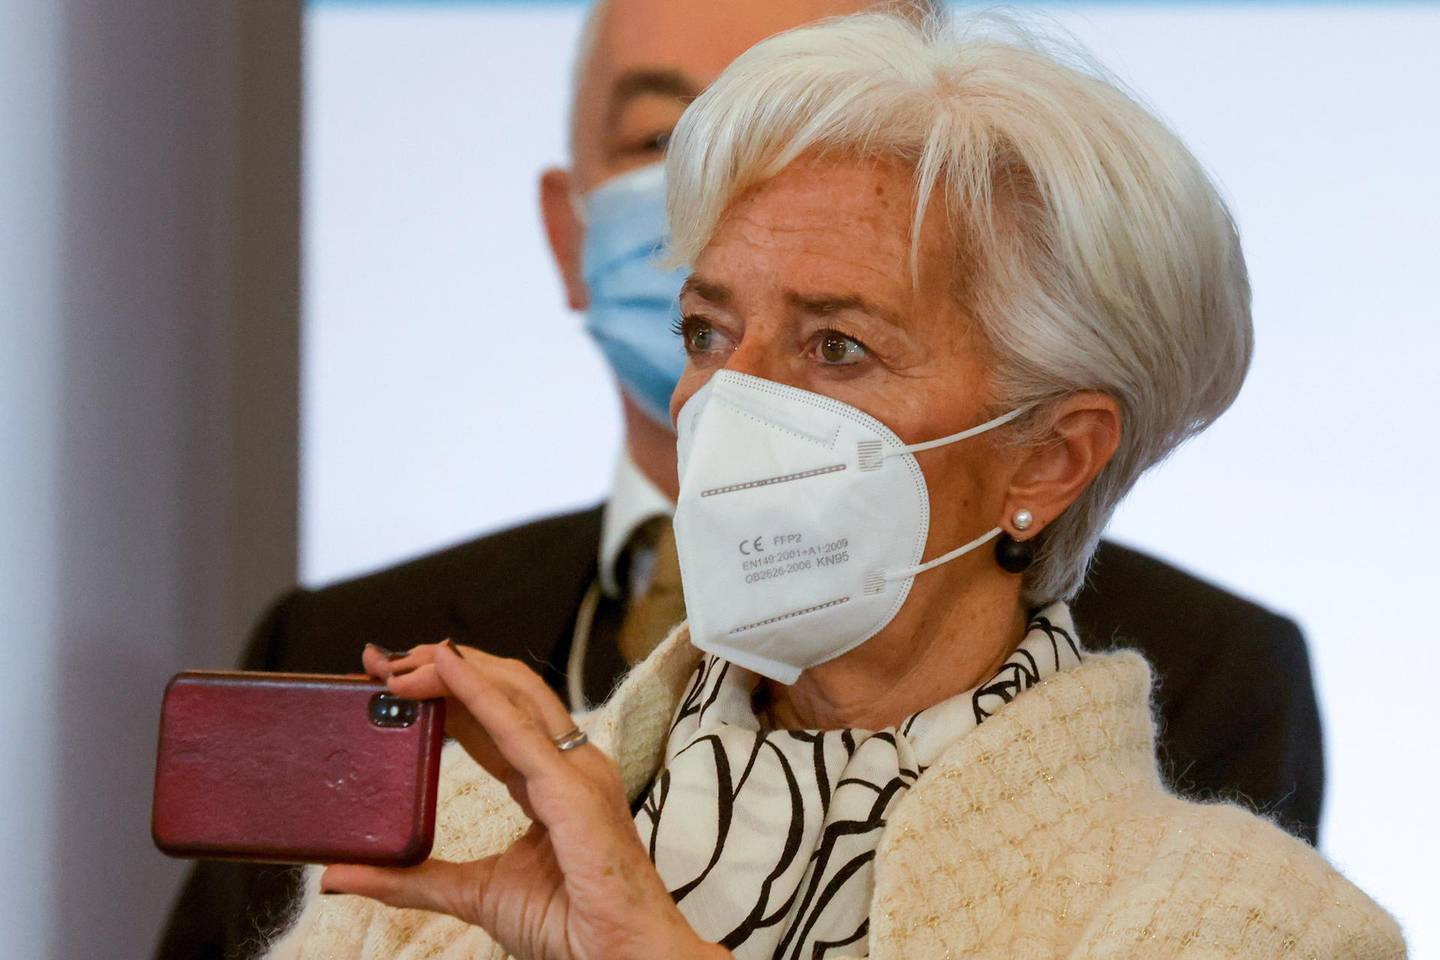 President of the European Central Bank (ECB) Christine Lagarde holds her smartphone as she attends the One Planet Summit, at The Elysee Palace, in Paris, Monday Jan. 11, 2021. Protecting the world's biodiversity is on the agenda for world leaders at the One Planet Summit, which was being held by videoconference due to the coronavirus pandemic. (Ludovic Marin, Pool Photo via AP)